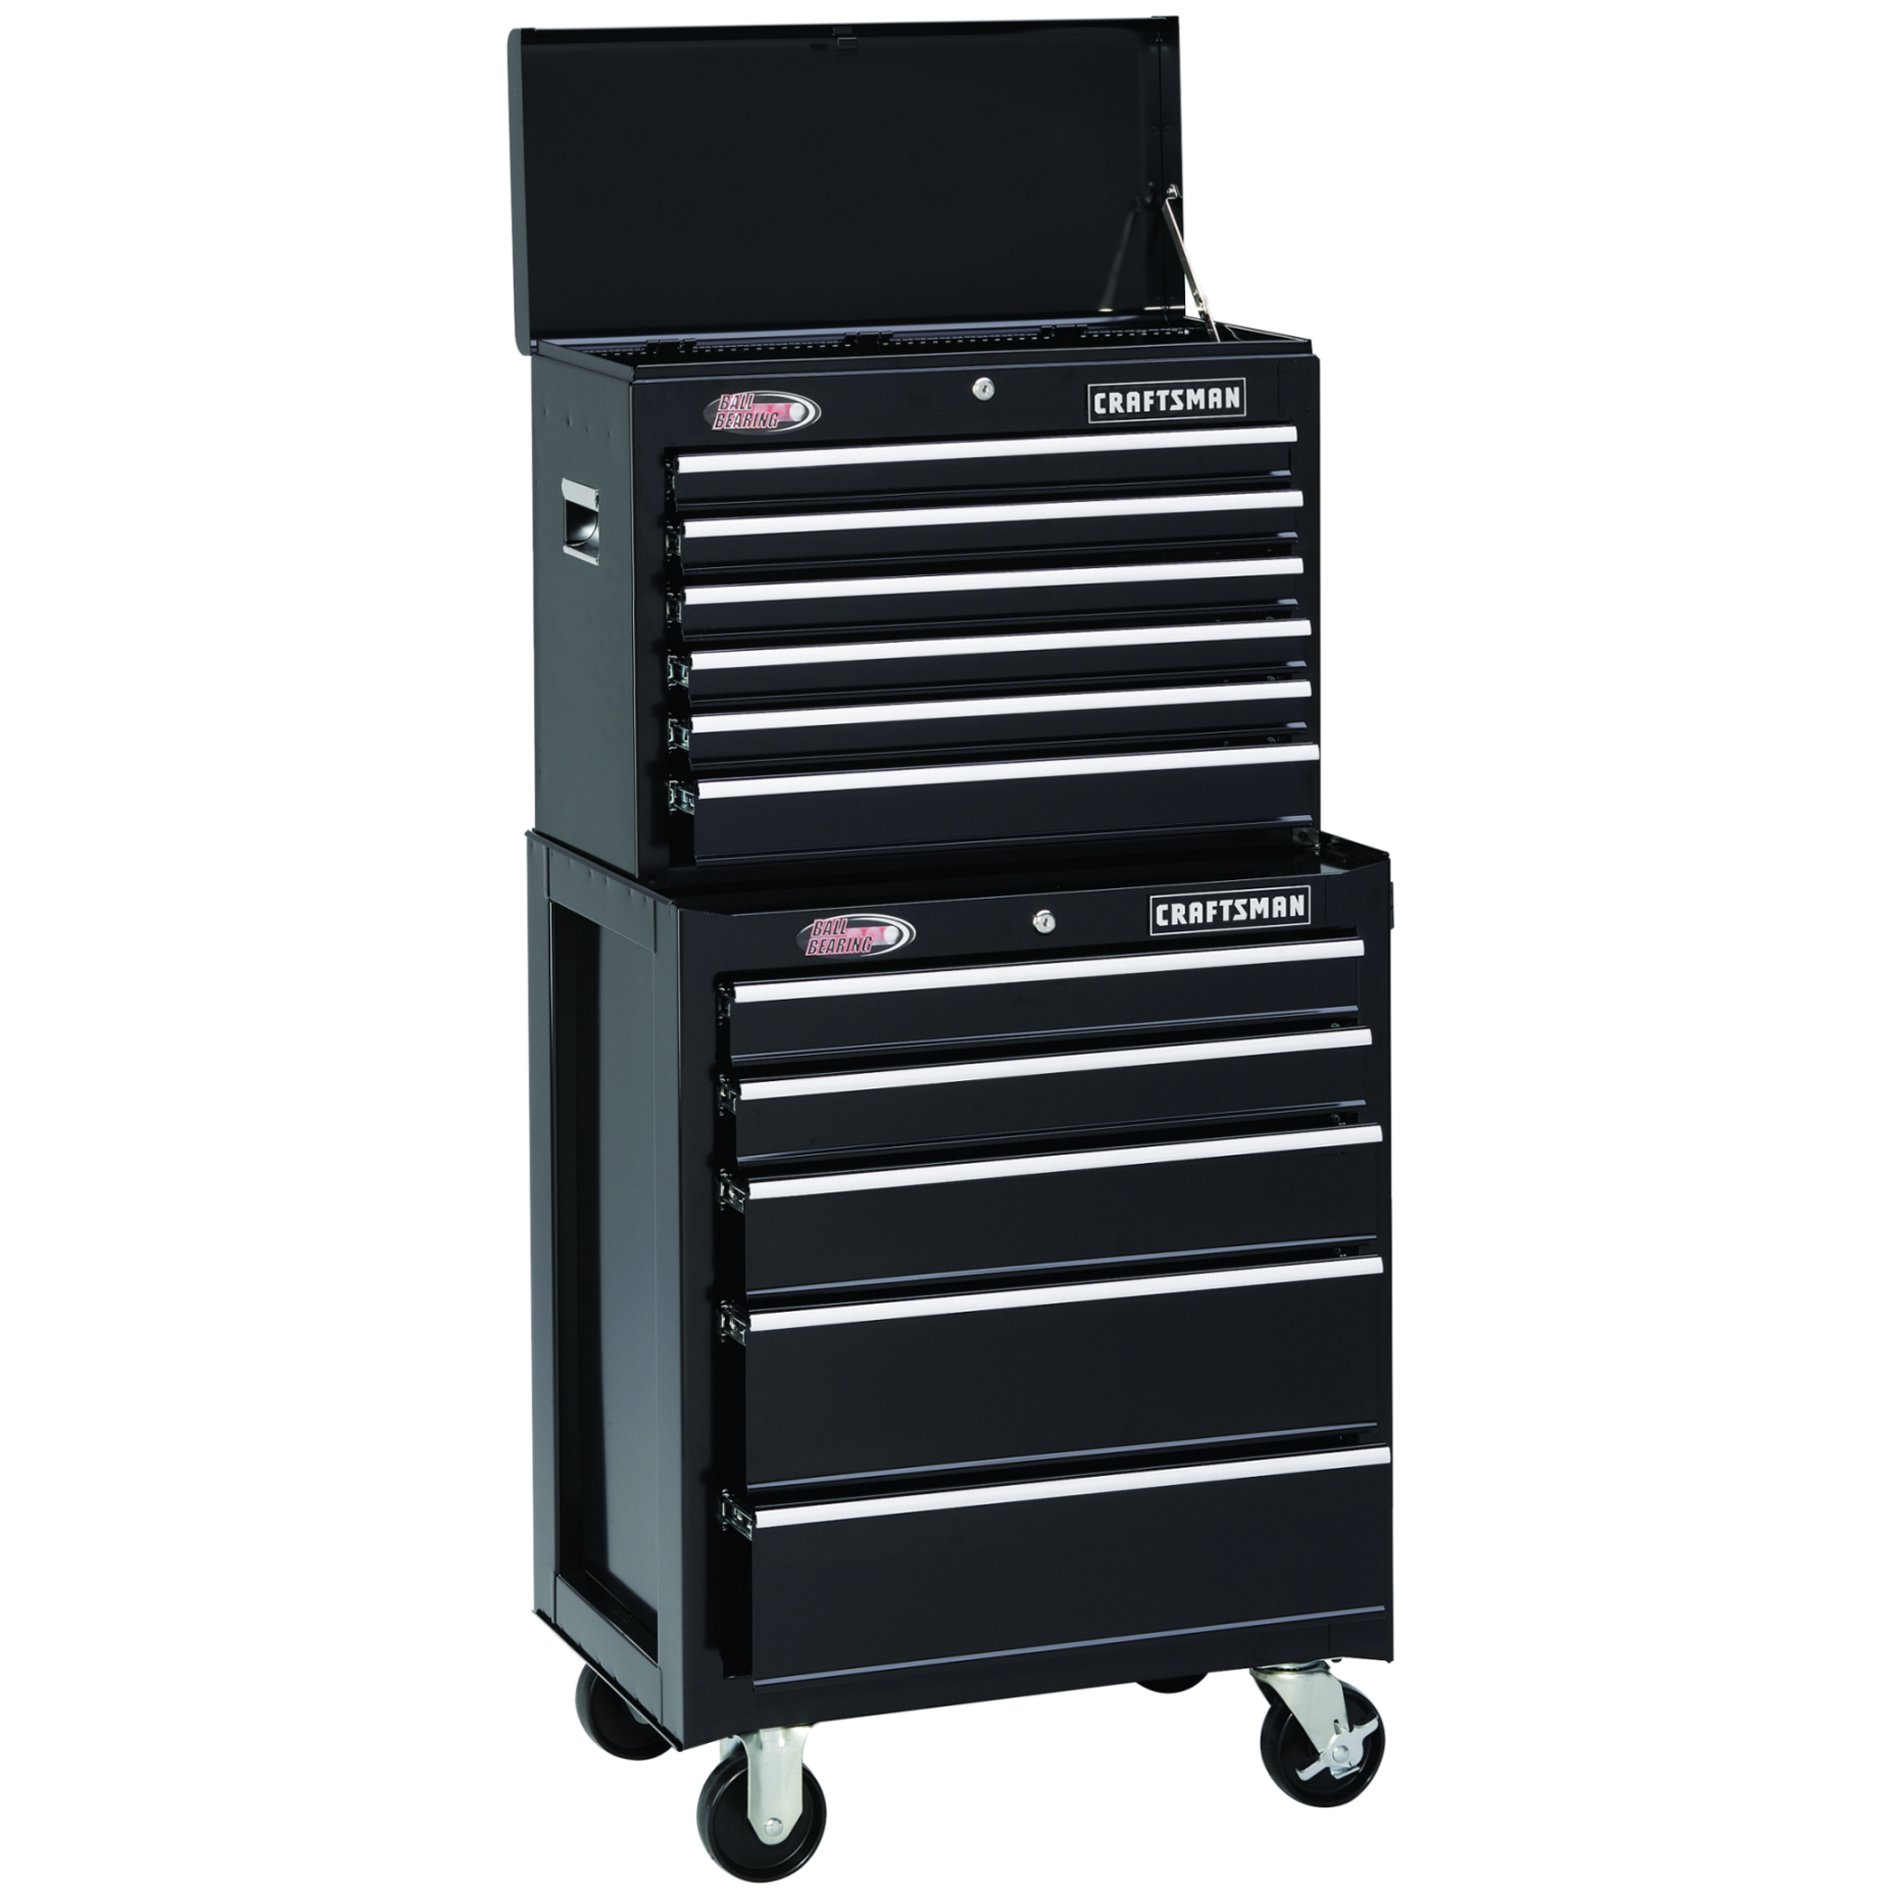 "Craftsman 26"" 6-Drawer Ball-Bearing Tool Chest - Black"